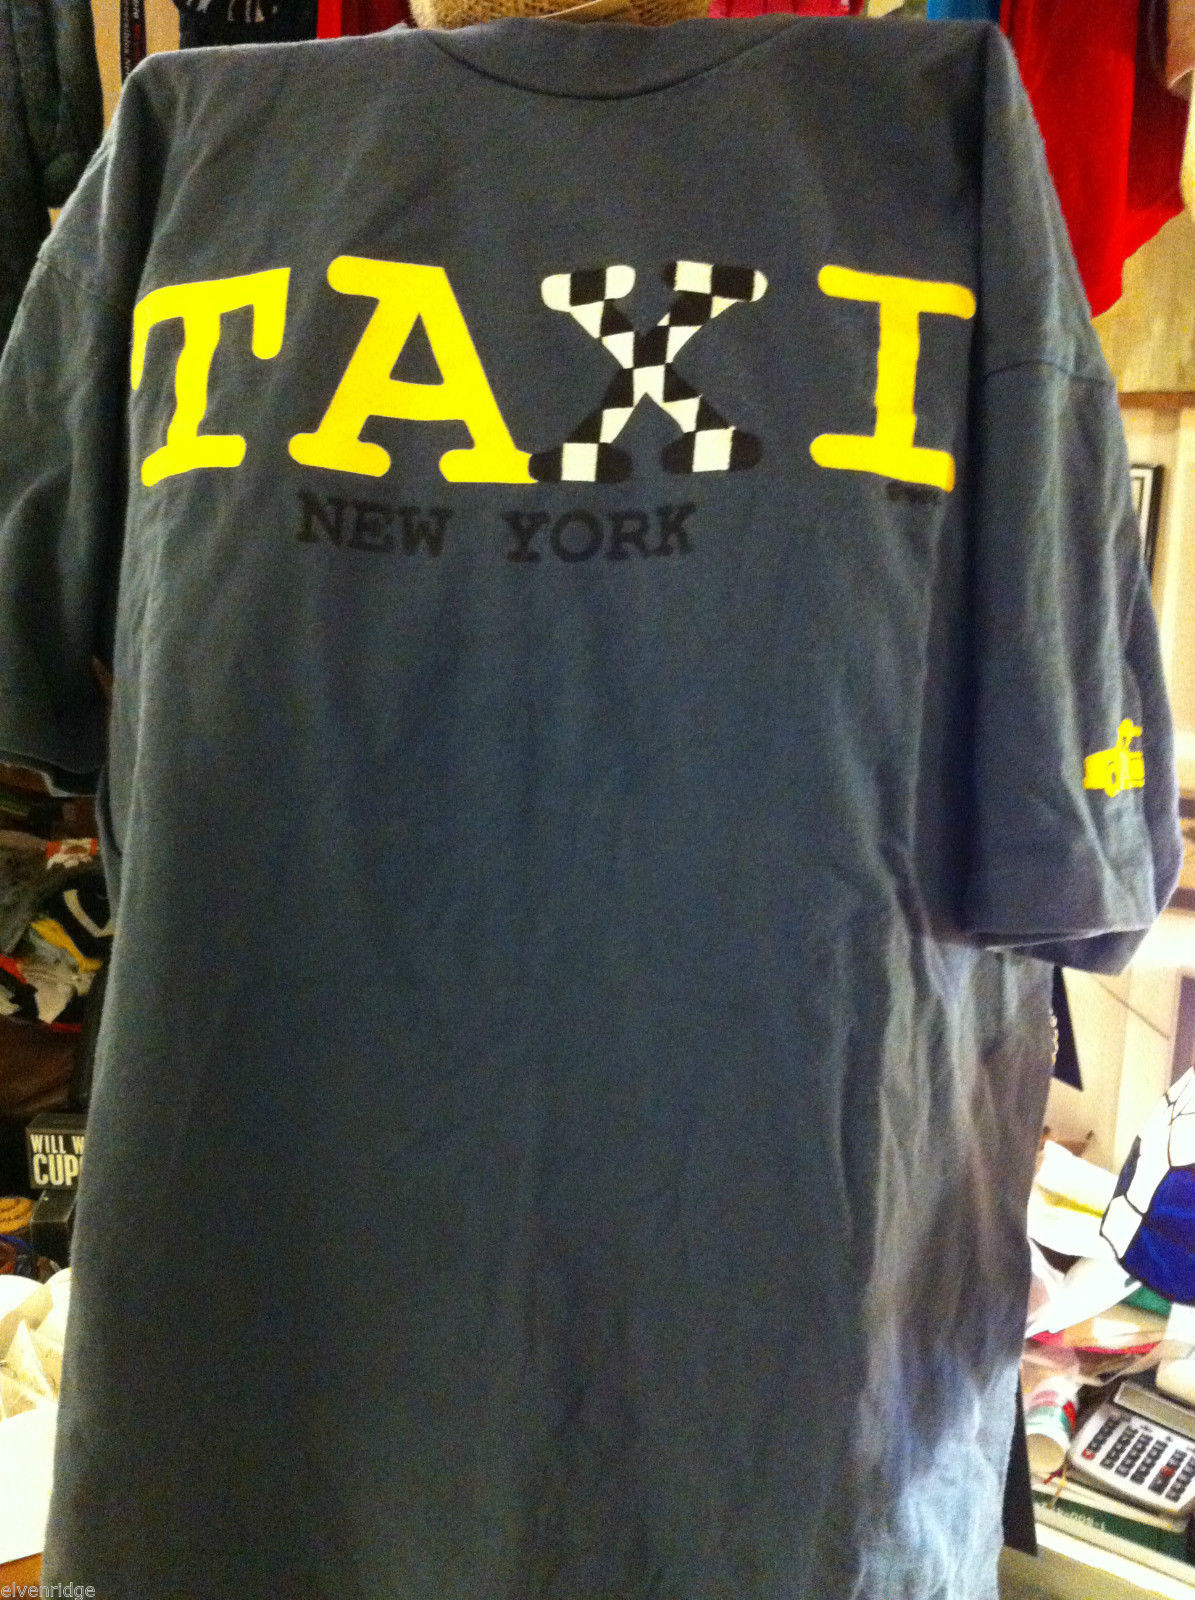 Gray T shirt size L New York Taxi